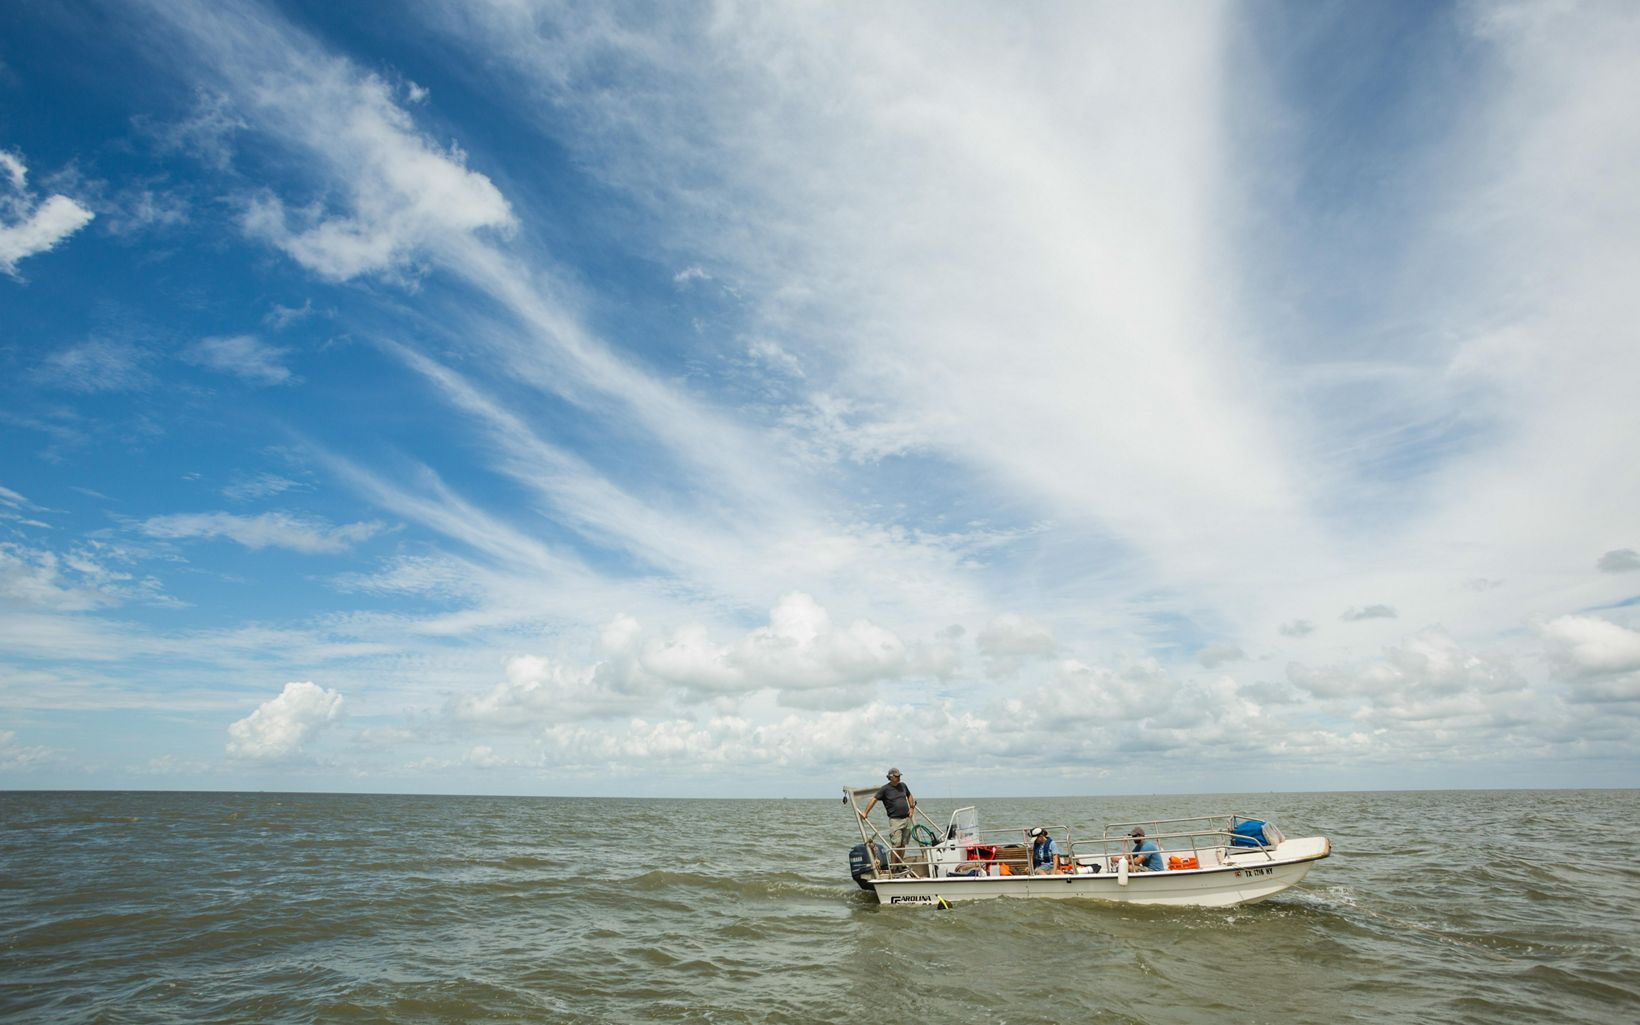 A small motor boat on the water under a blue sky with scattered clouds.